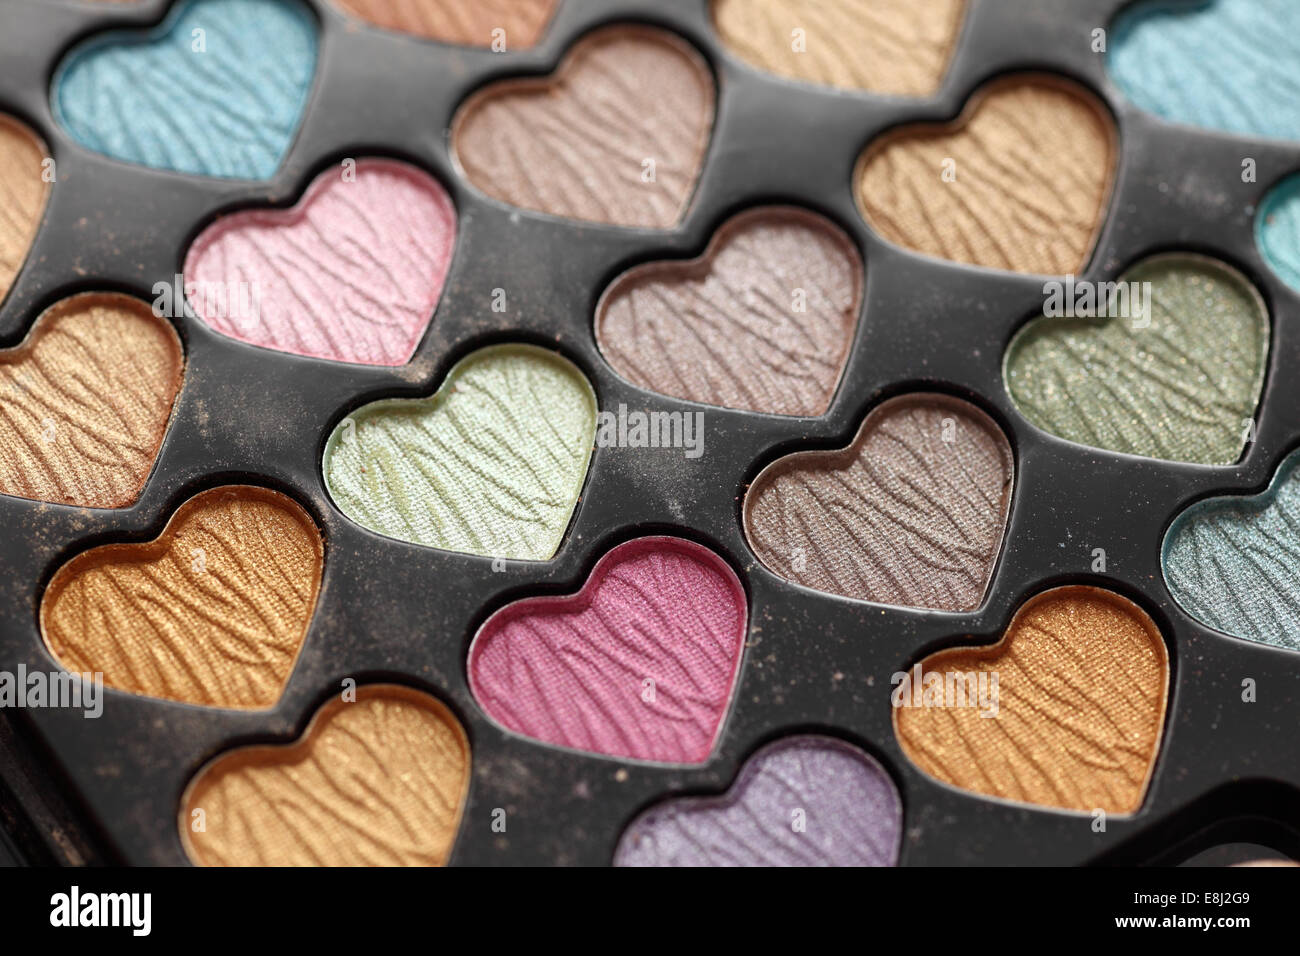 Close-up of eyeshadow heart shaped palette. - Stock Image